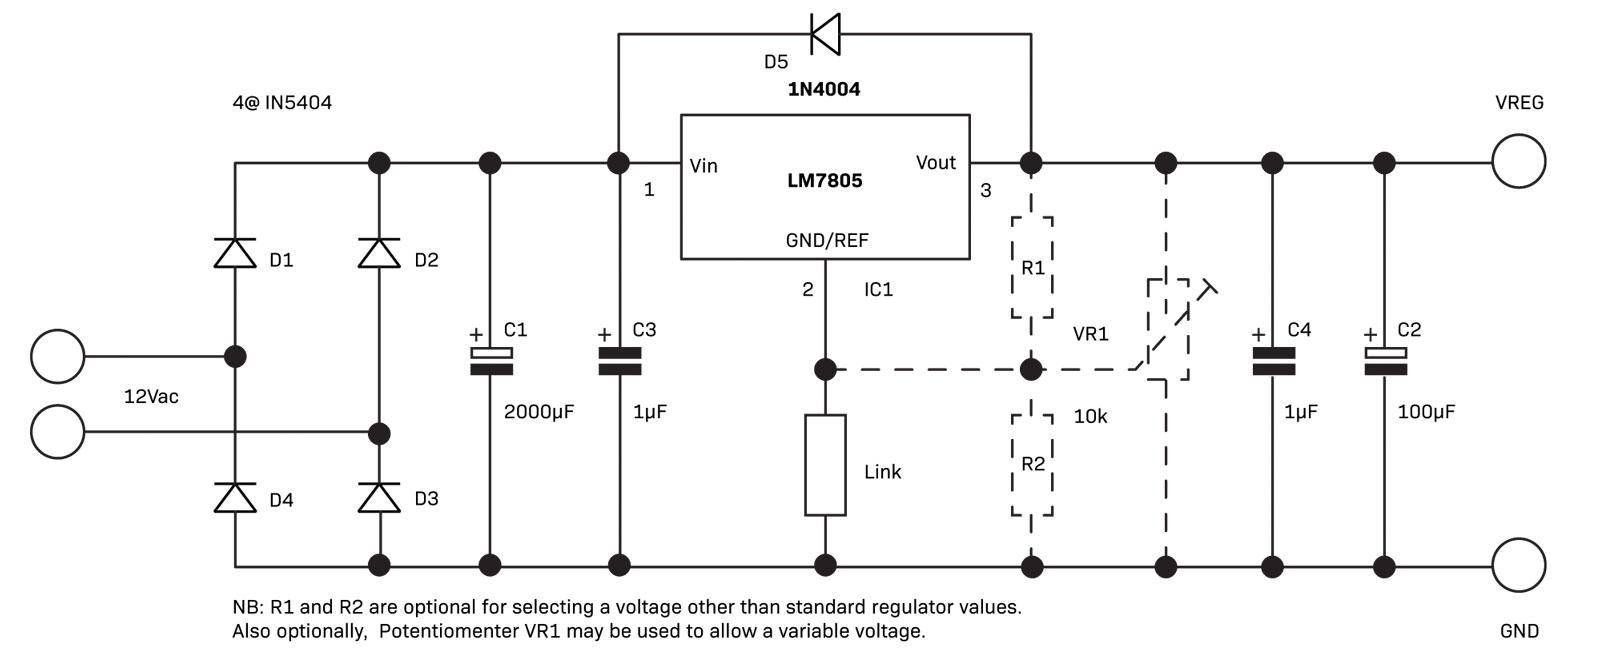 Part 2 The Linear Power Supply Diyode Magazine Circuits Can Be Used Anywhere A Zener Diode Function Would Fig 4